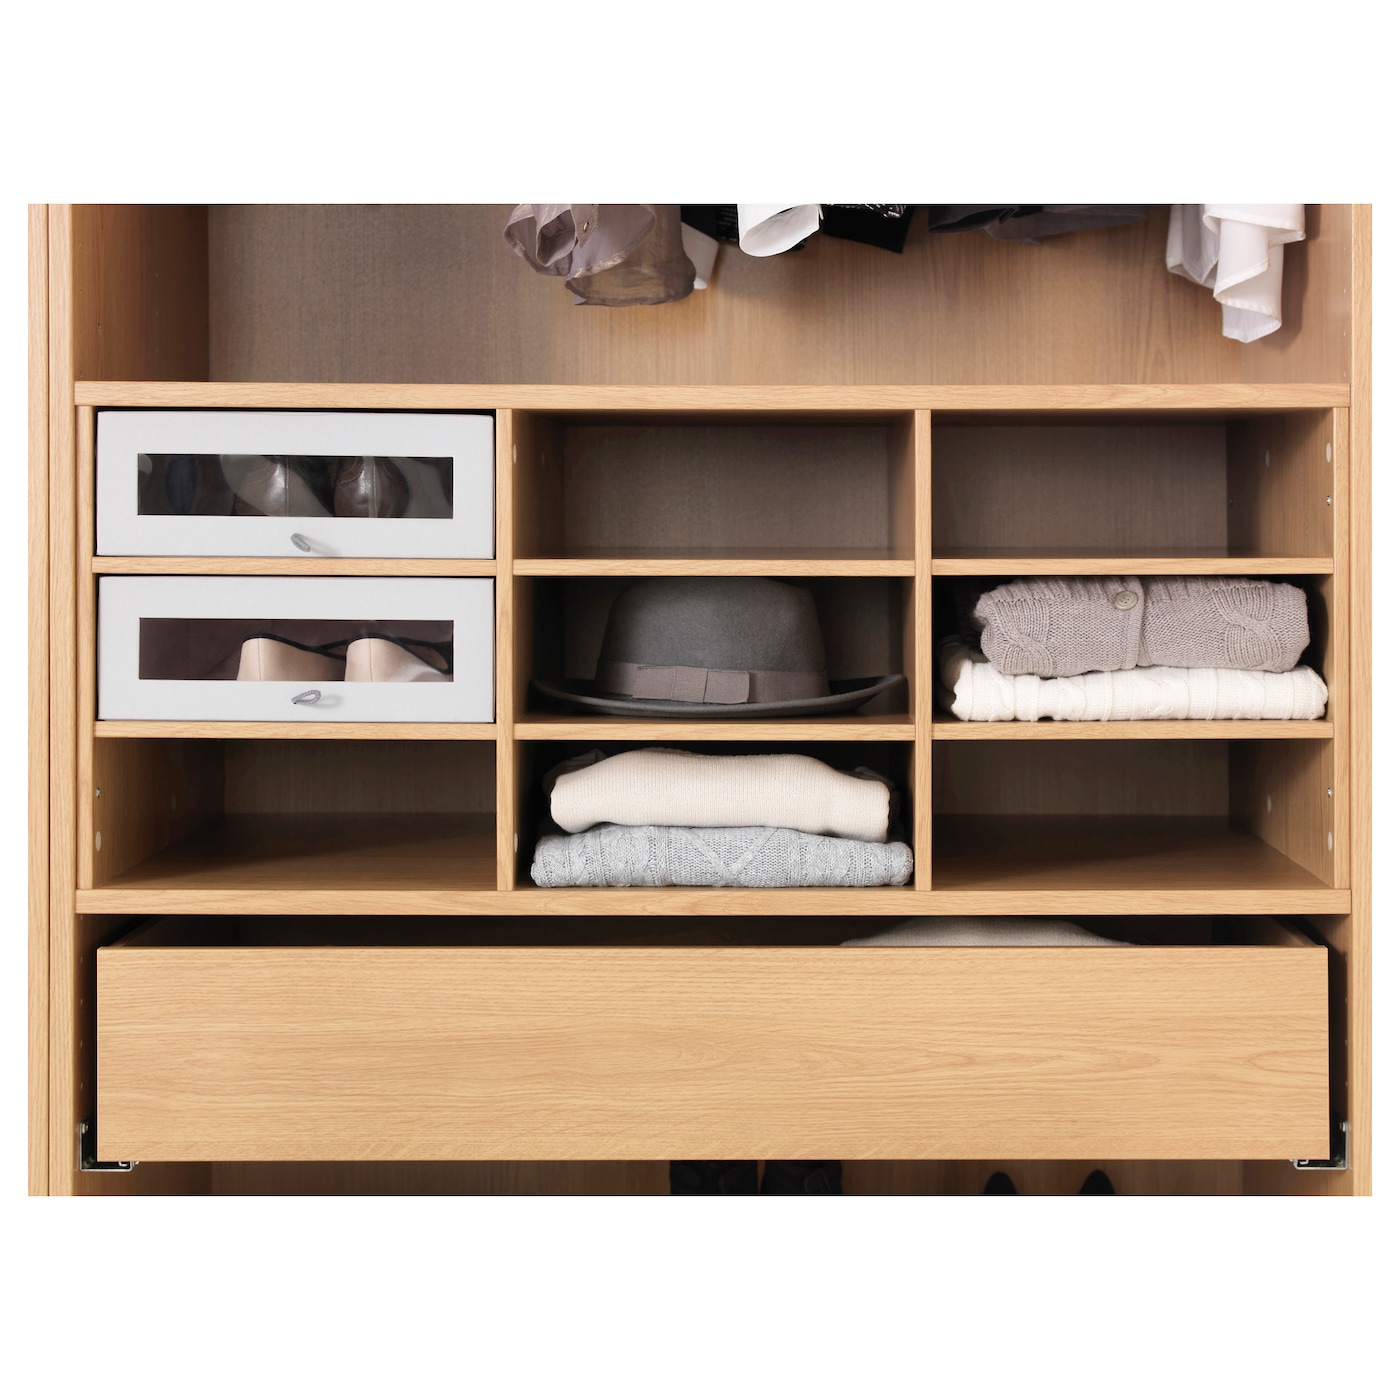 Ikea Pax Komplement Kommode : IKEA KOMPLEMENT sectioned shelves 10 year guarantee. Read about the ...